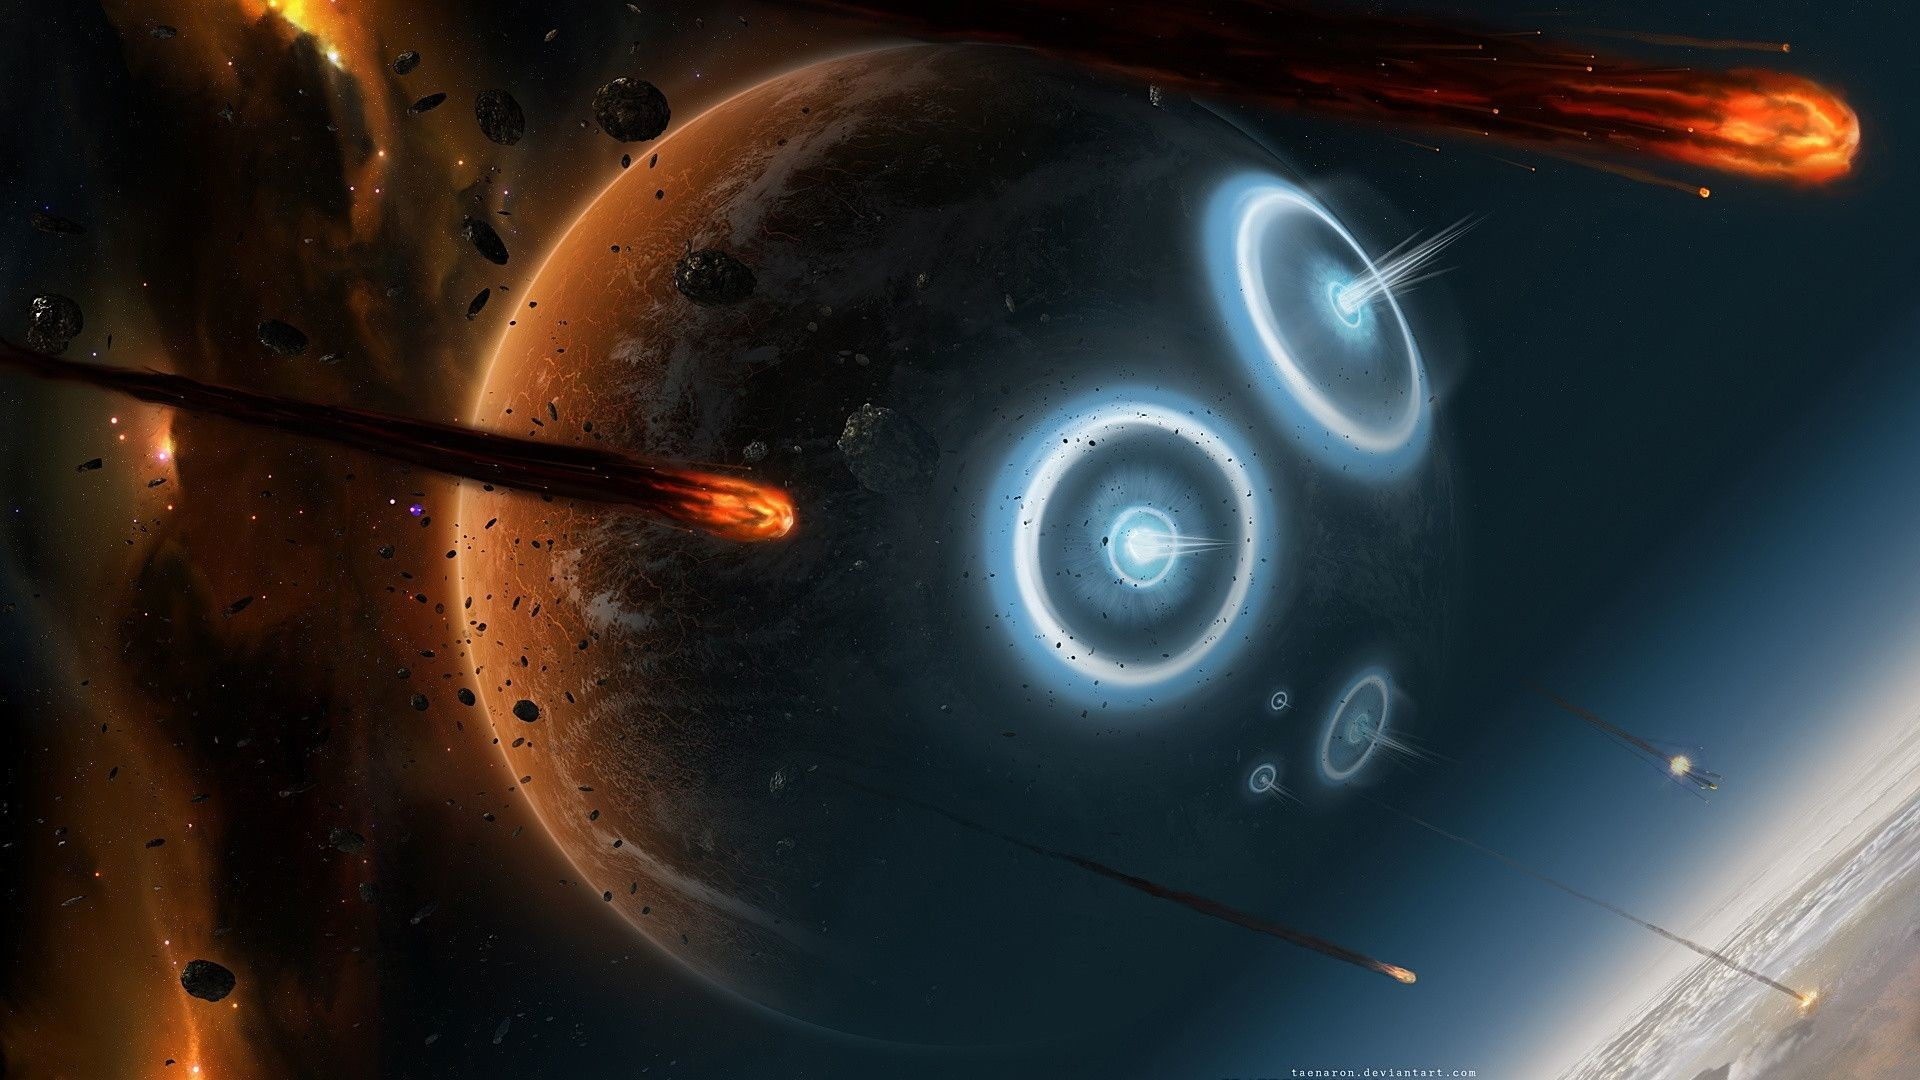 cool space wallpapers hd 4F